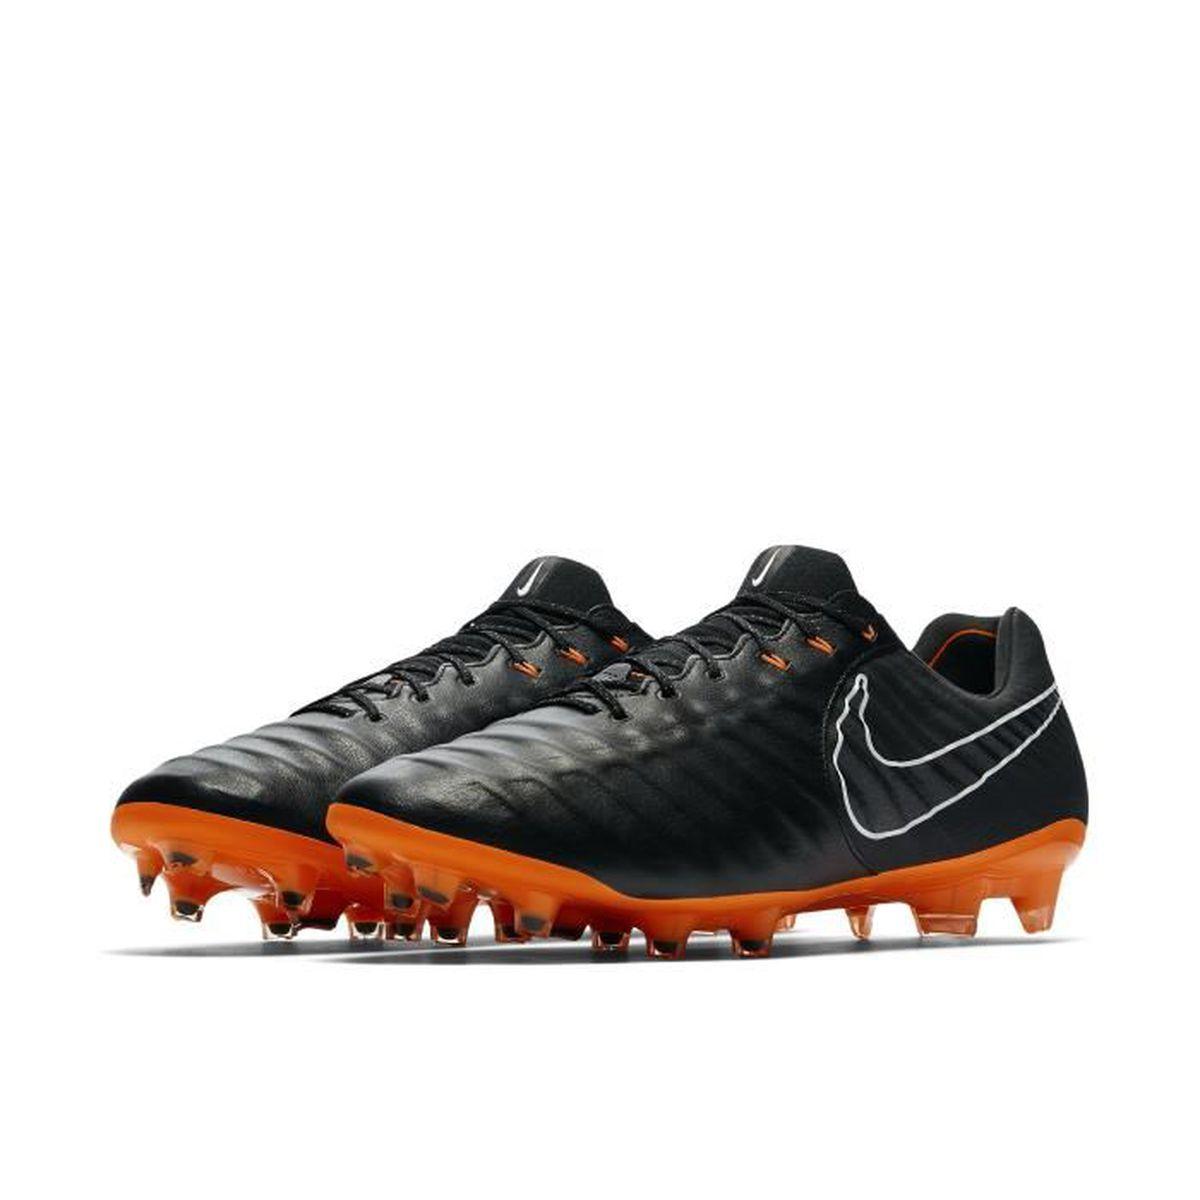 2b75edcd29cc CHAUSSURES DE FOOTBALL Nike Tiempo Legend VII Elite FG, Sol ferme, Adulte